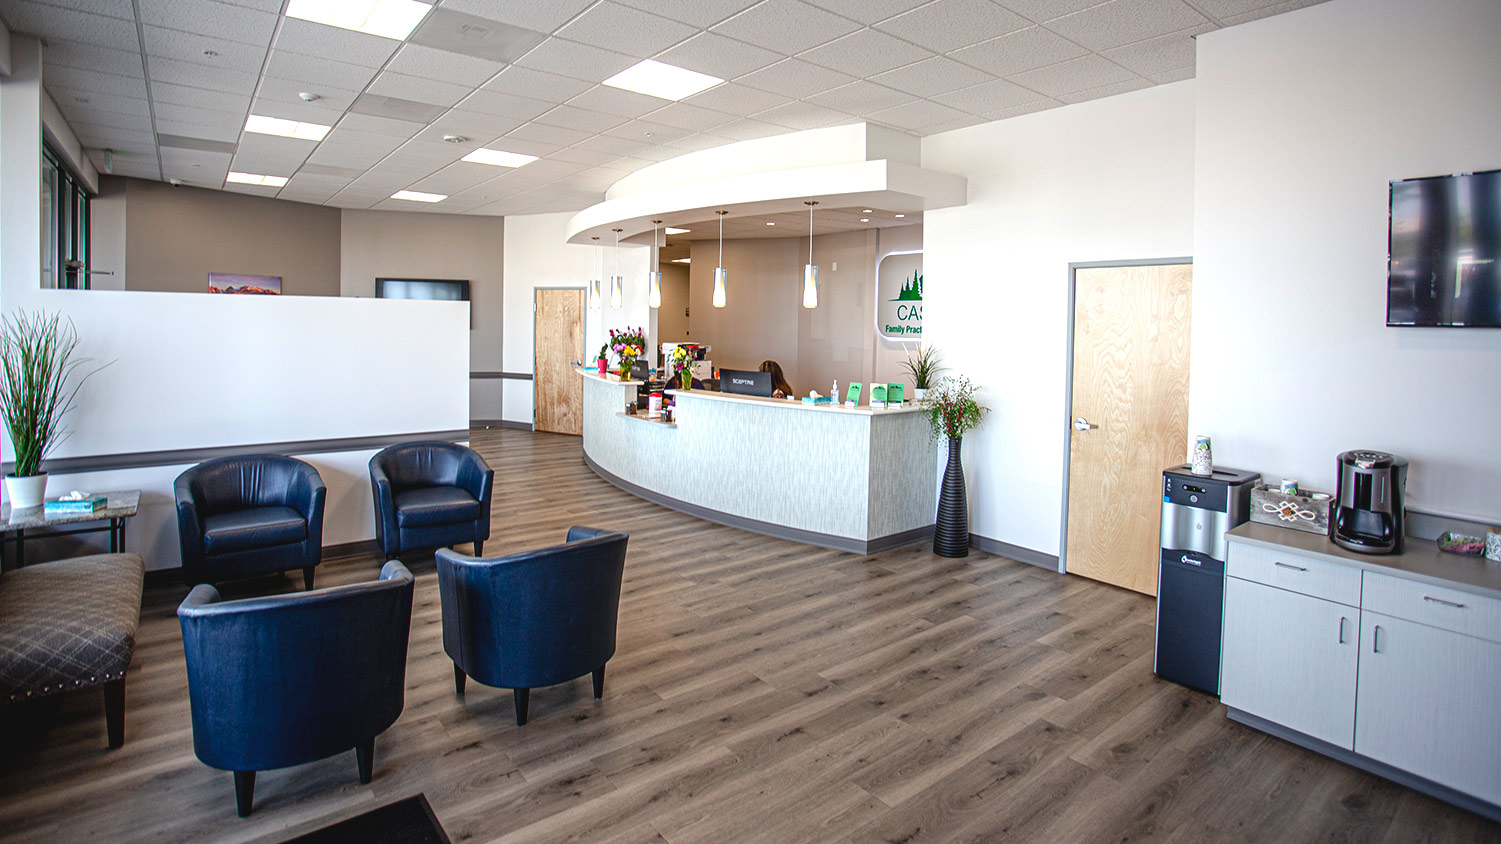 Castle Pines Family Practice and Urgent Care Lobby